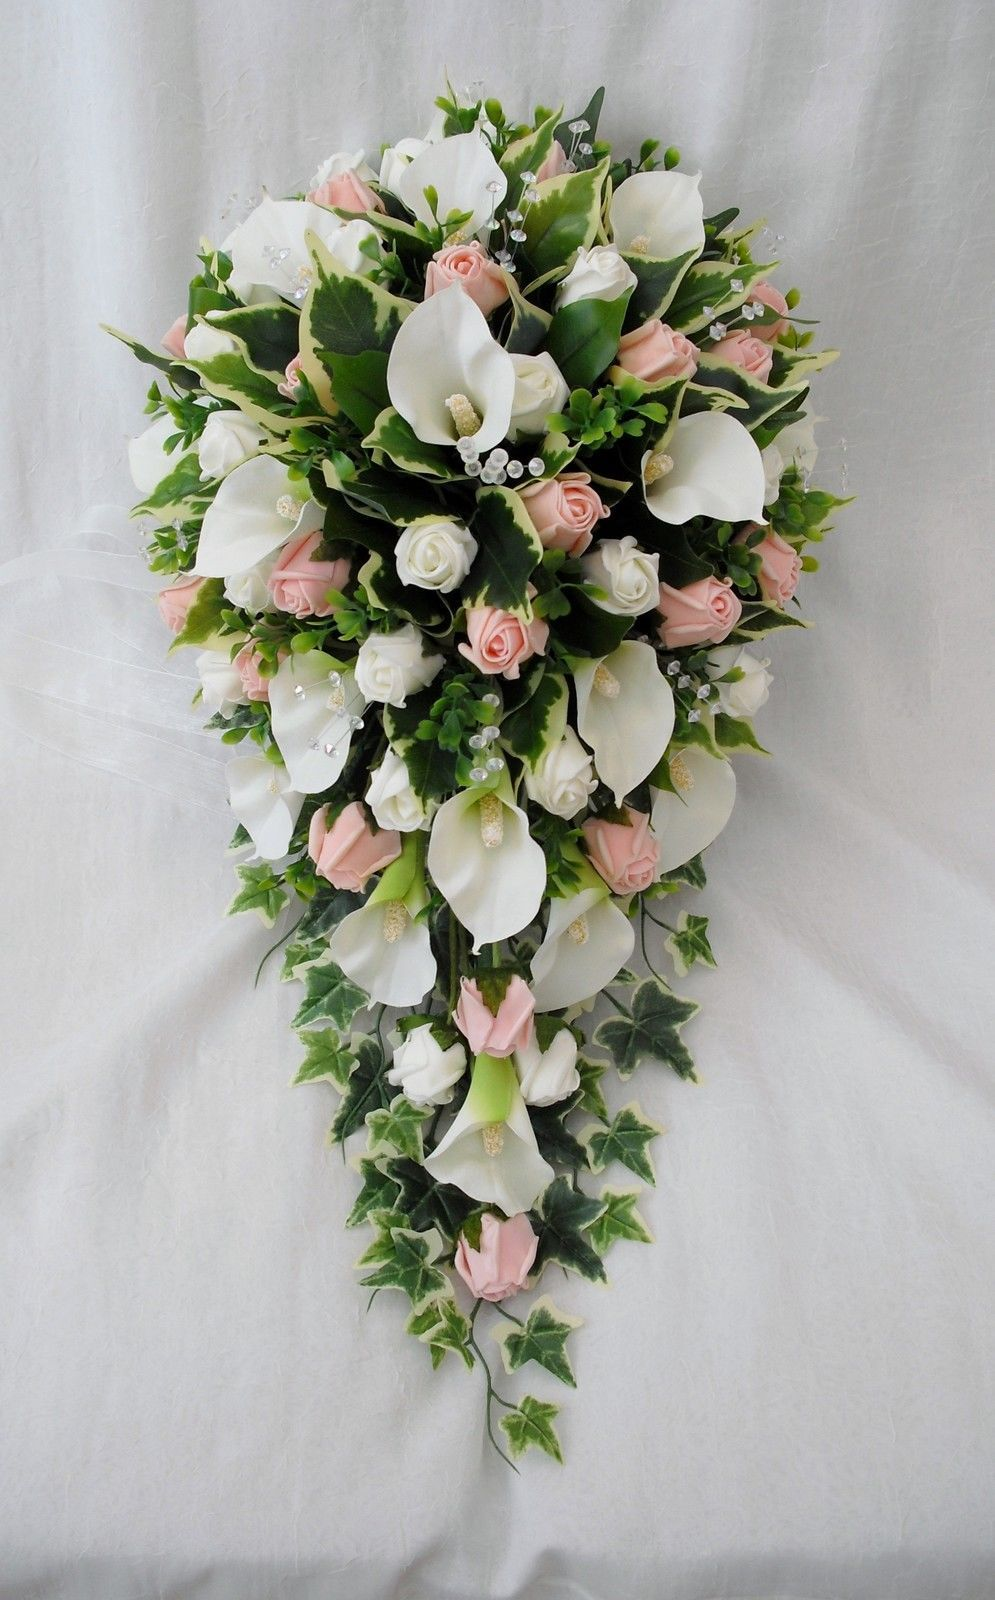 Bouquet Of Beautiful Pink And White Roses With Baby S Breath Buy Online At Best Prices In Sri Lanka From Lankaeshop Com